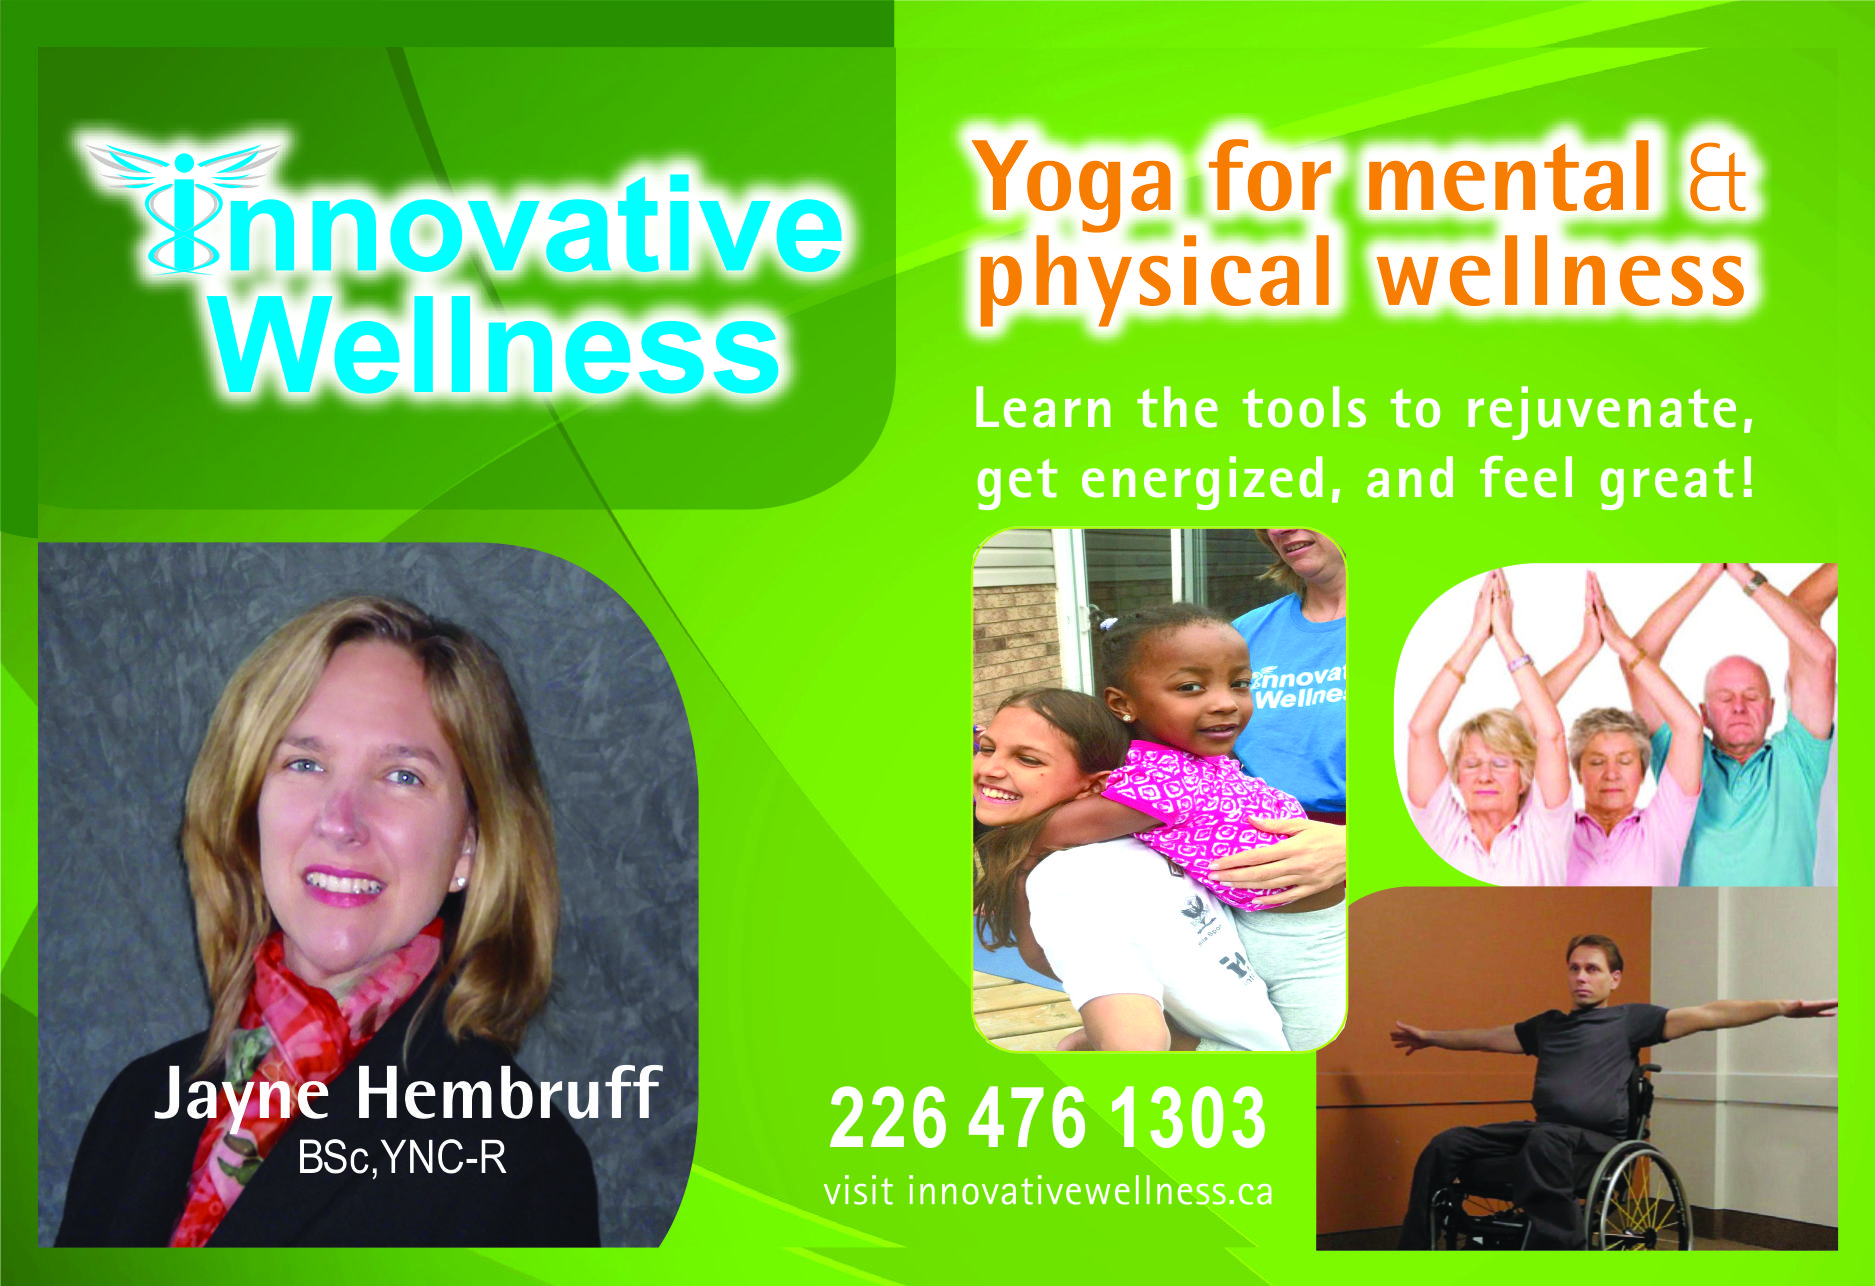 Innovative Wellness Postcard October 29,2014